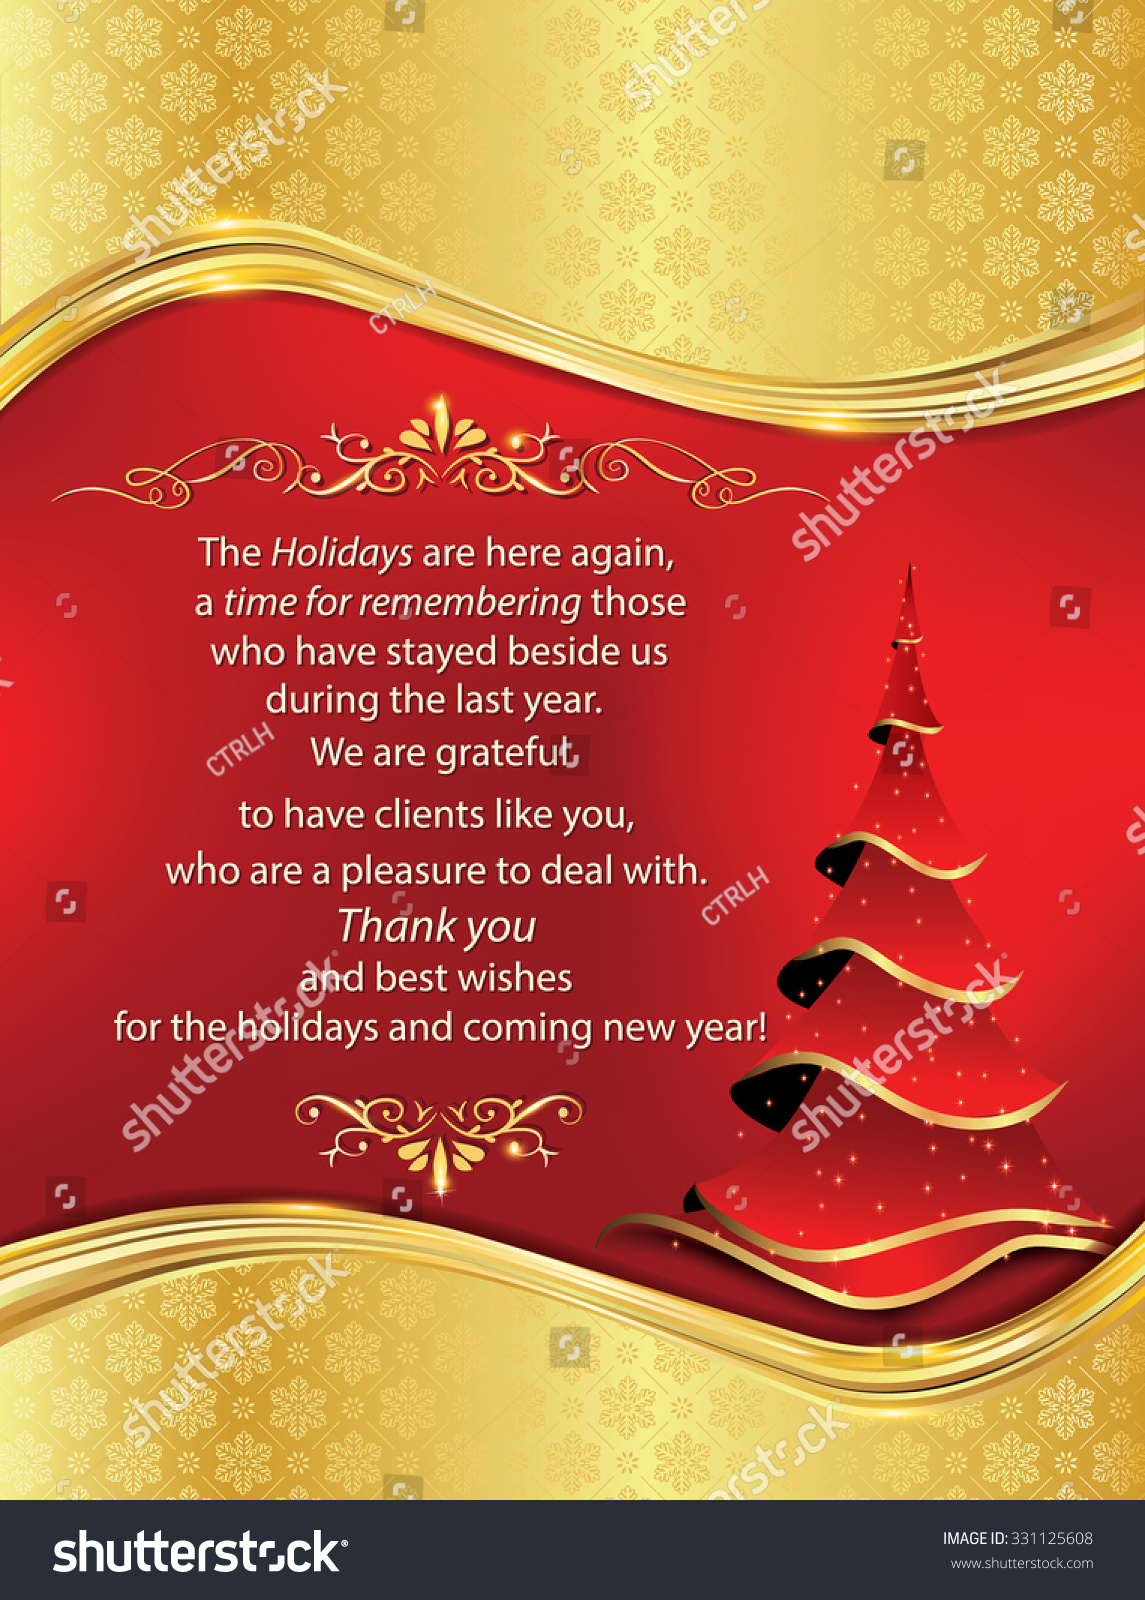 Snap Thank You Business Greeting Card For New Year Stock